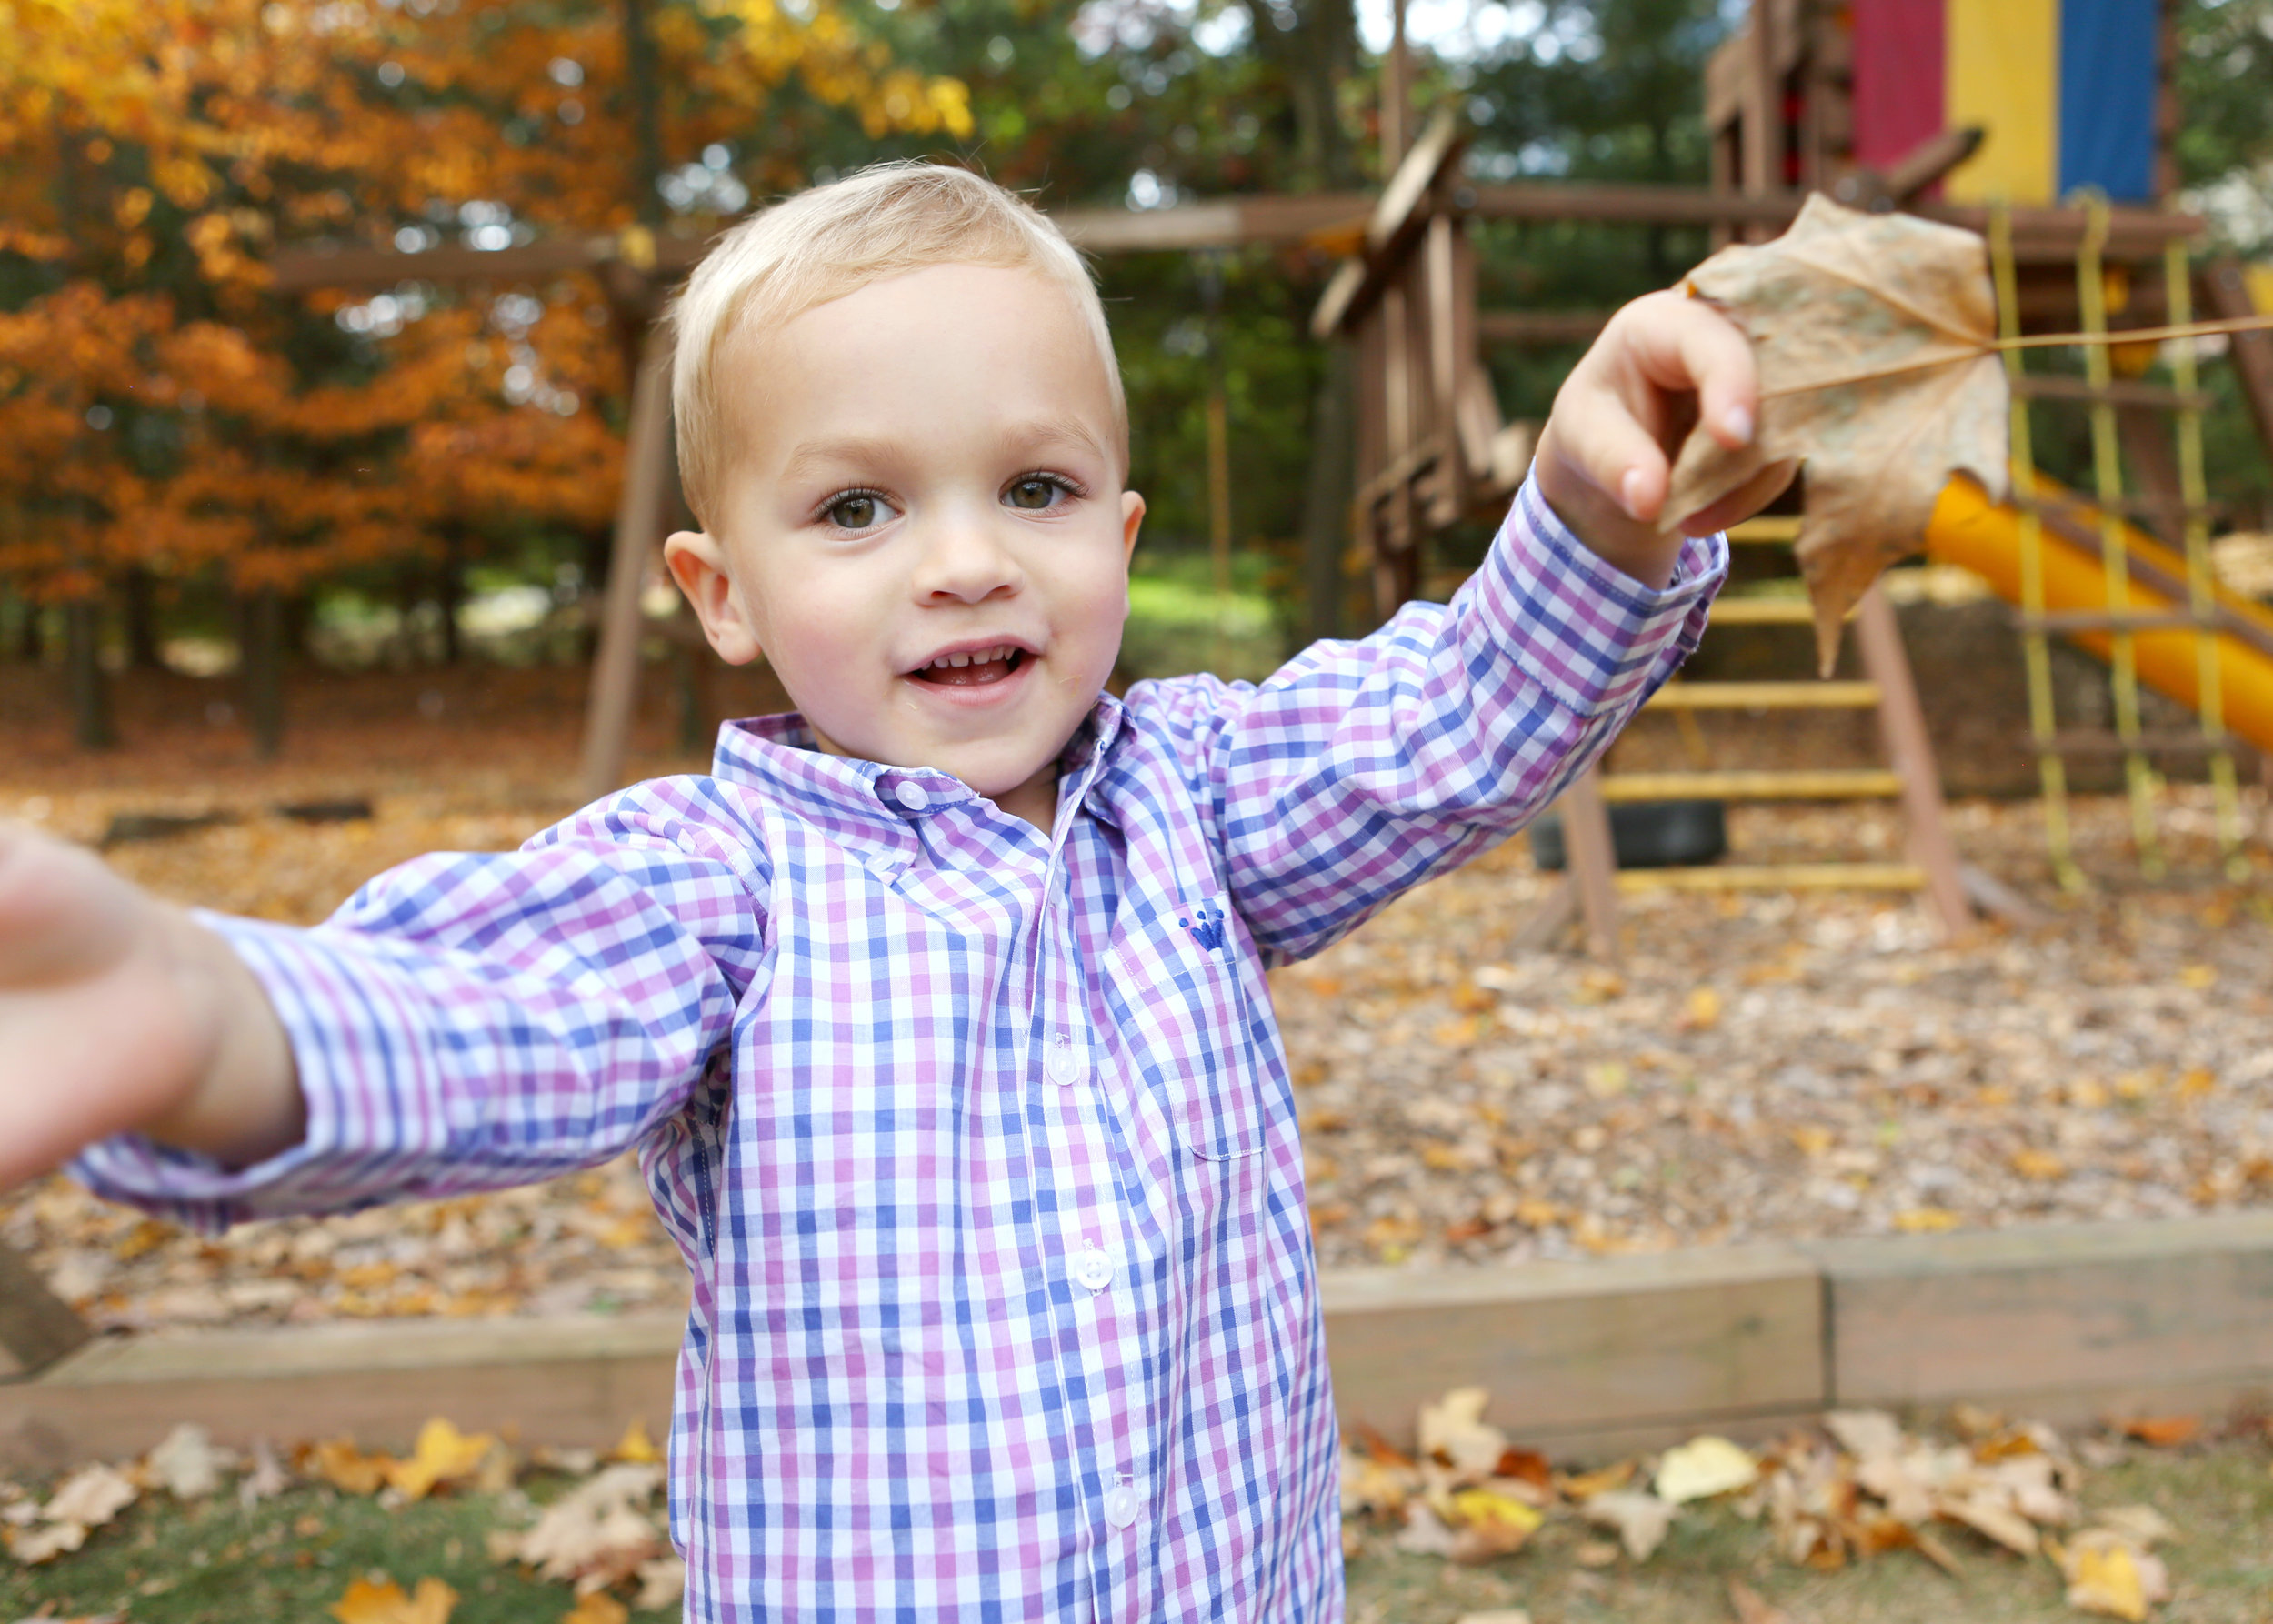 NJ and NYC based lifestyle photographer | Jennifer Lavelle Photography |  children and families, newborn, lifestyle, interiors, food and travel.  Boy throwing leaves.